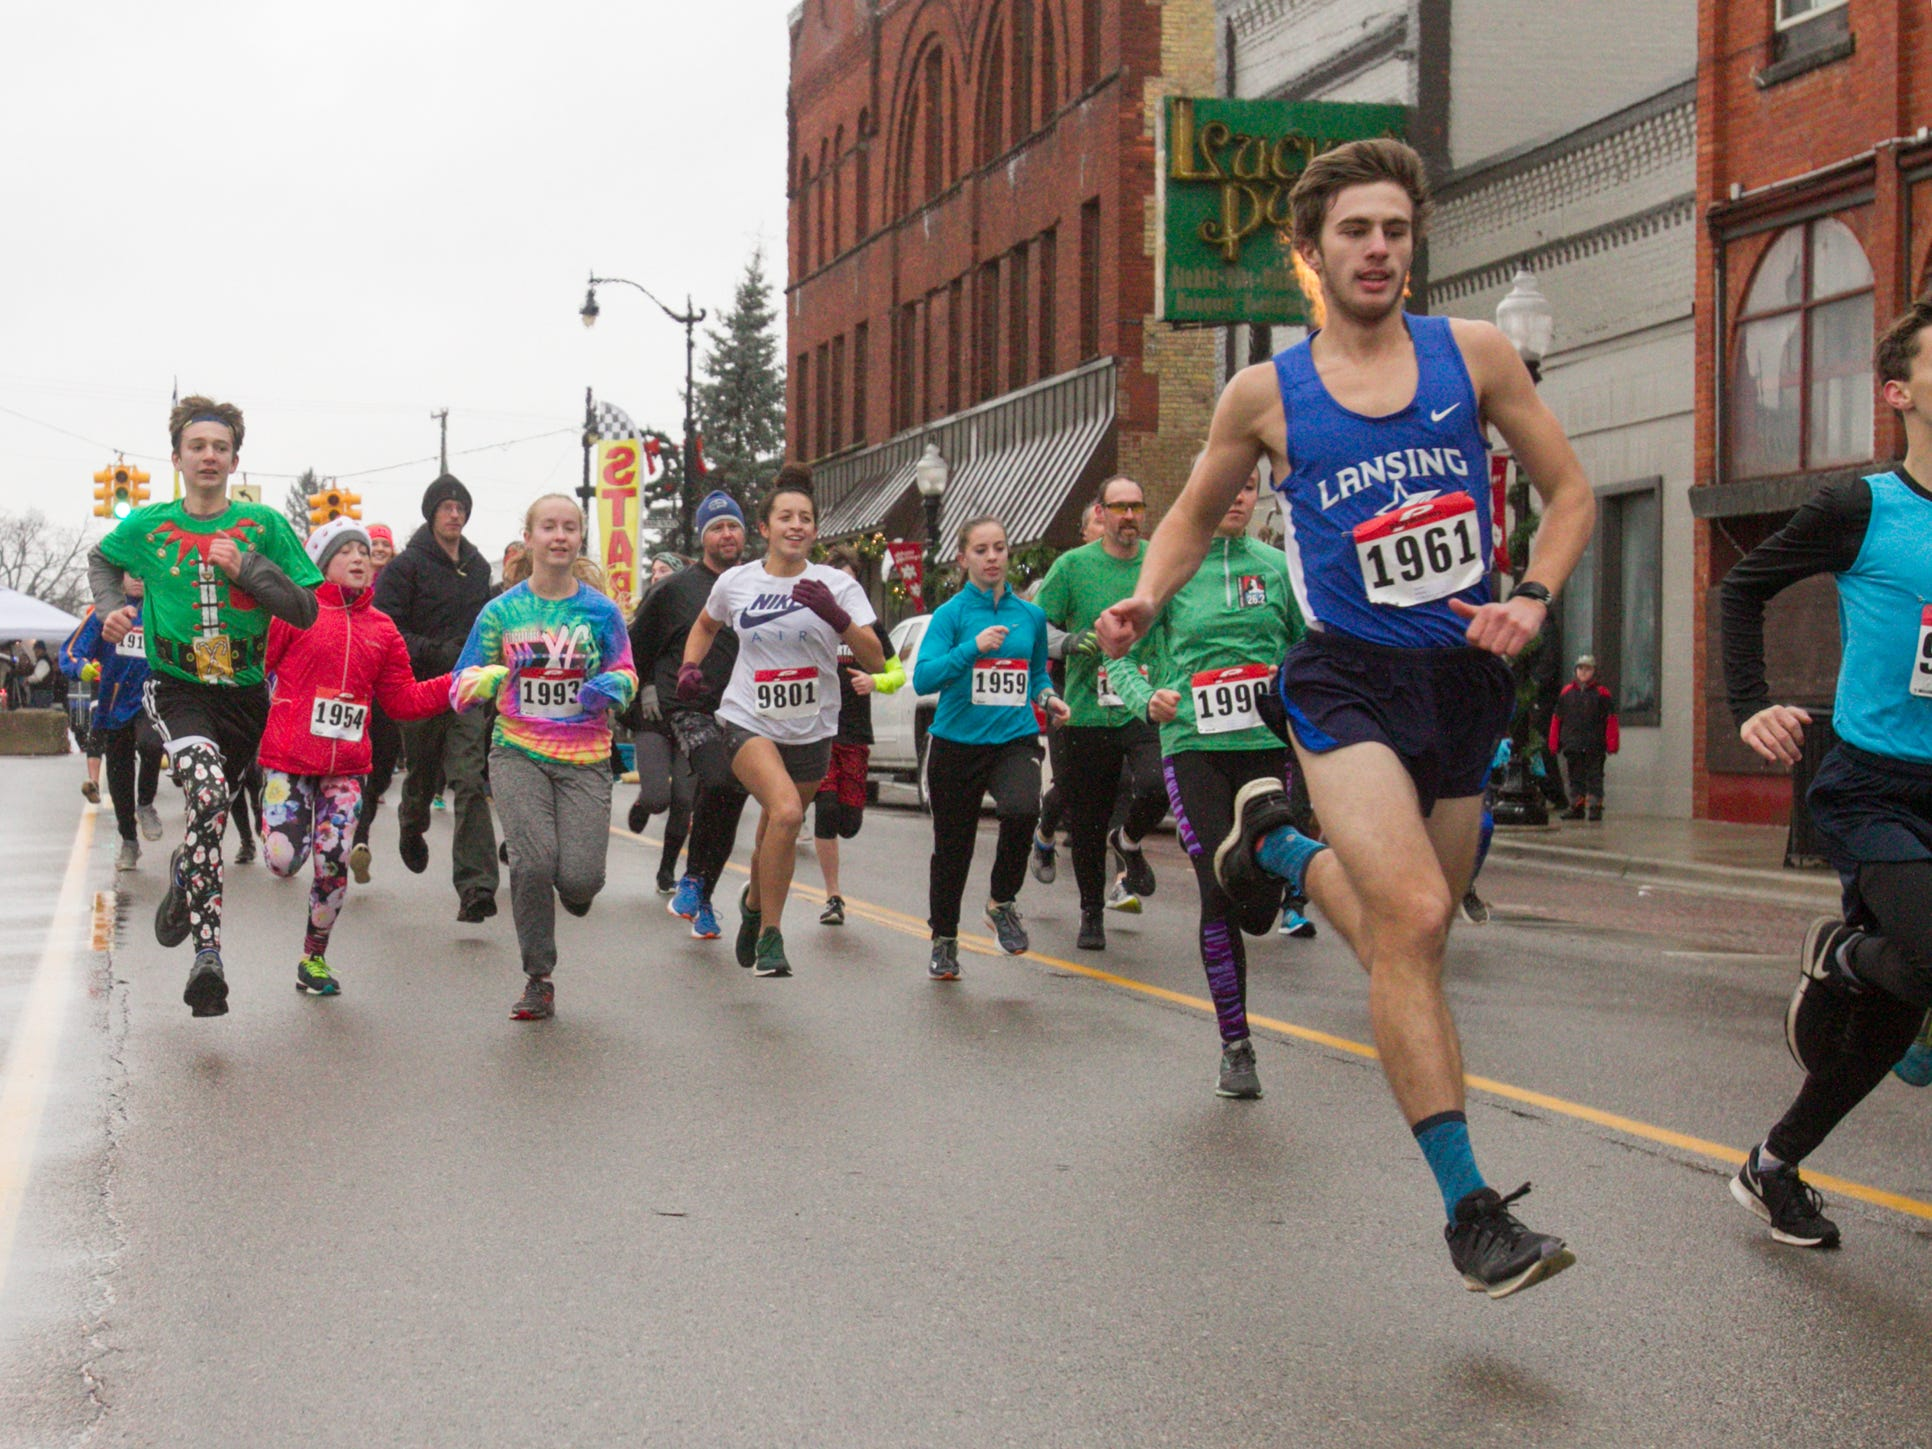 Runners set their pace in the beginning of the Dashing Through the Snow 5K run/walk, part of the Christmas in the 'Ville festivities Saturday, Dec. 1, 2018.